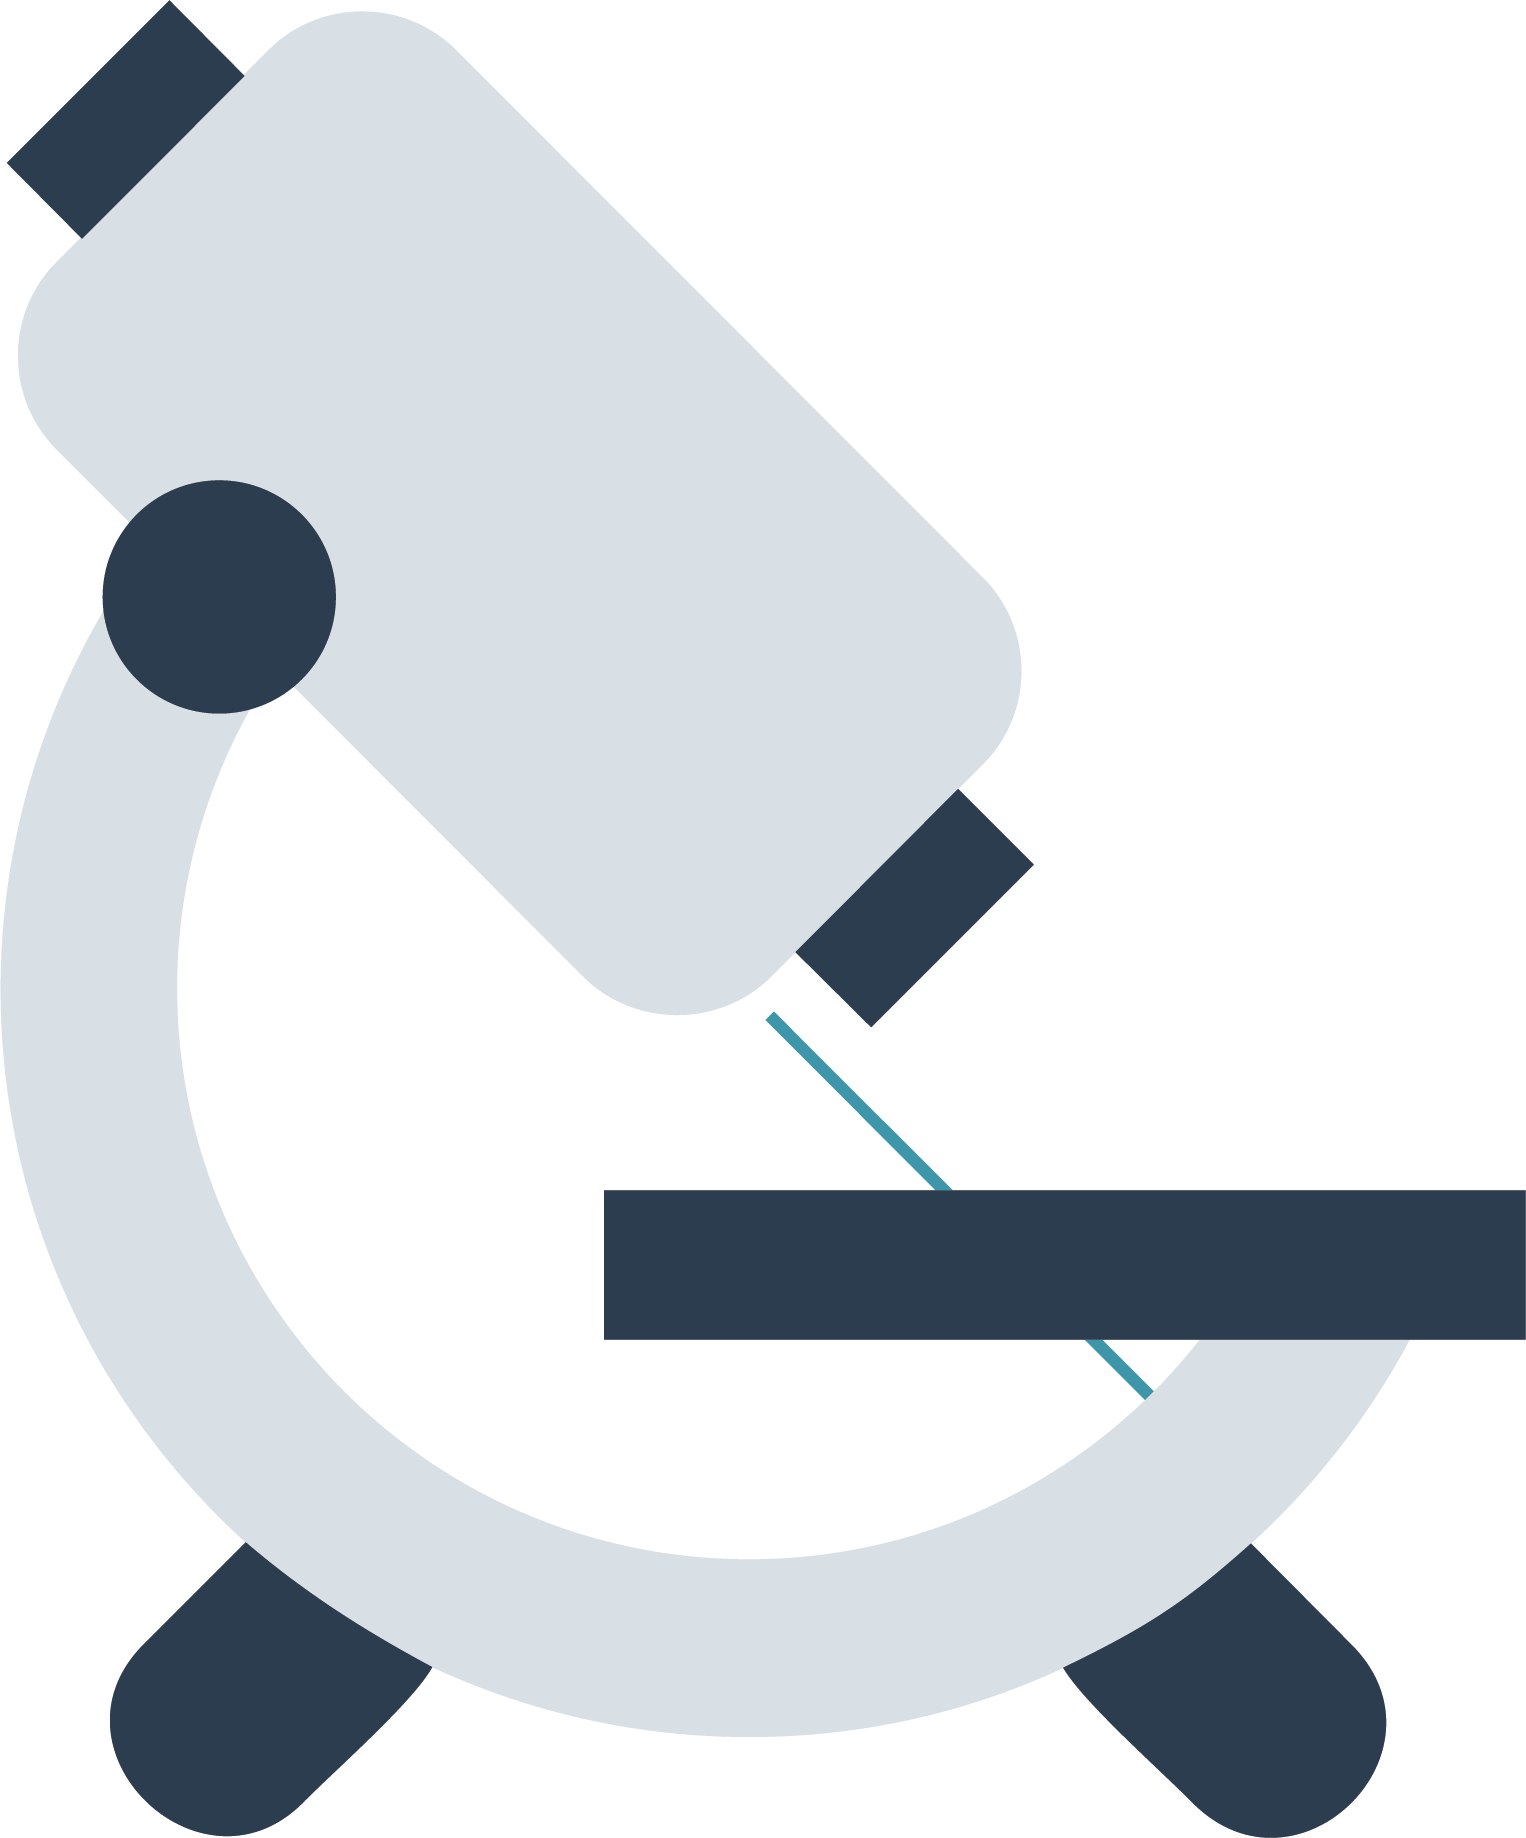 Microscope clipart biomed. Cartoon icon transprent png